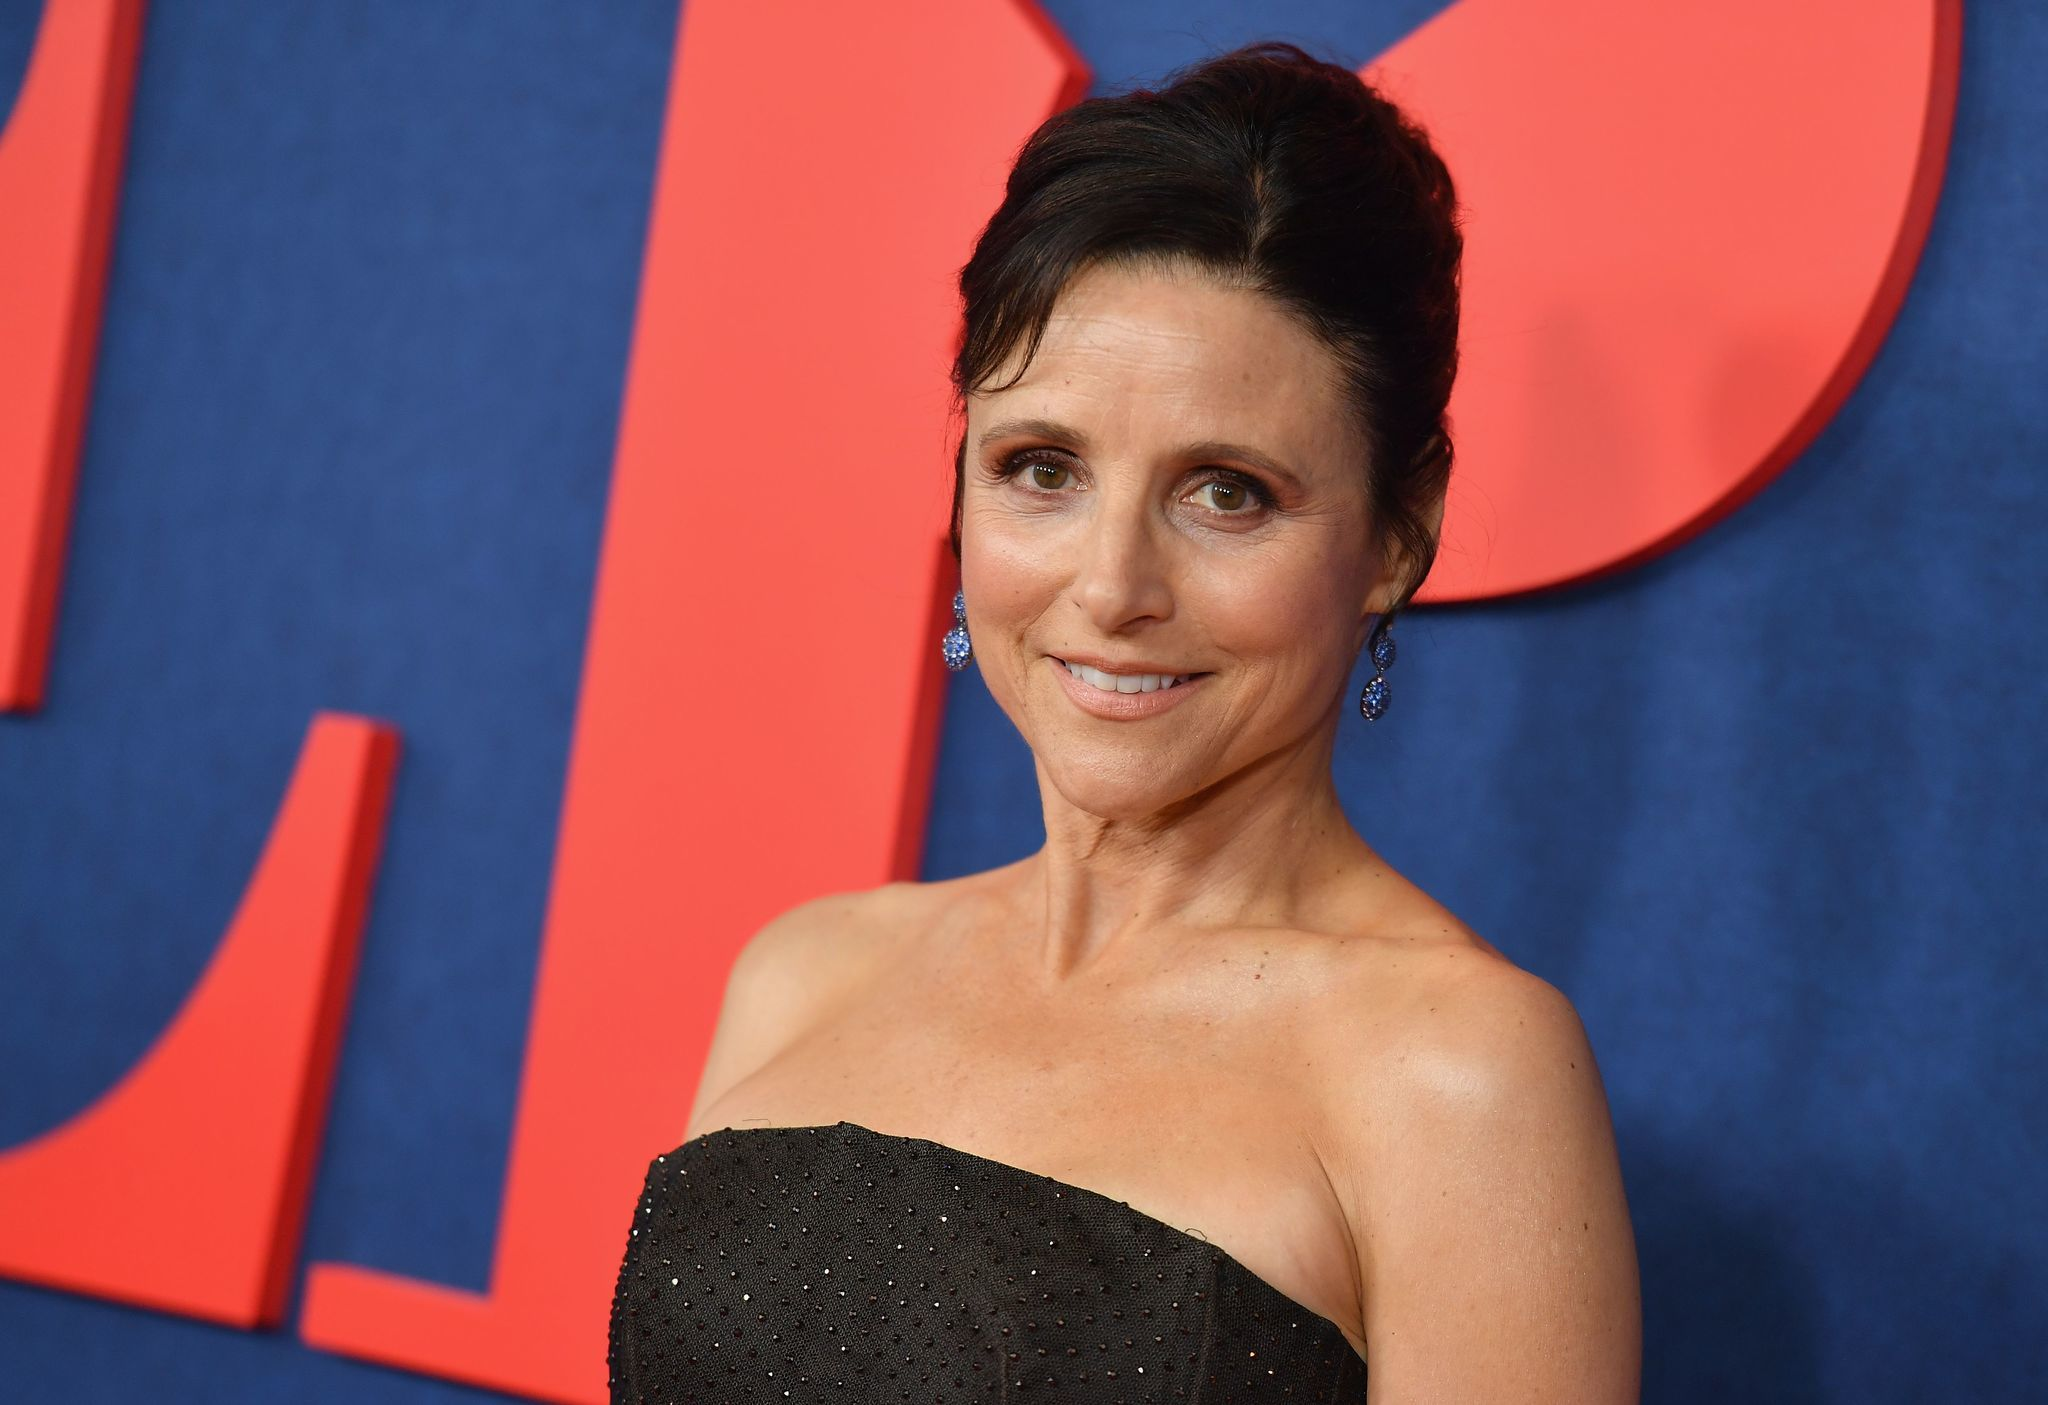 Julia Louis-Dreyfus says focusing on 'Veep' during her cancer fight was a 'lifesaver'